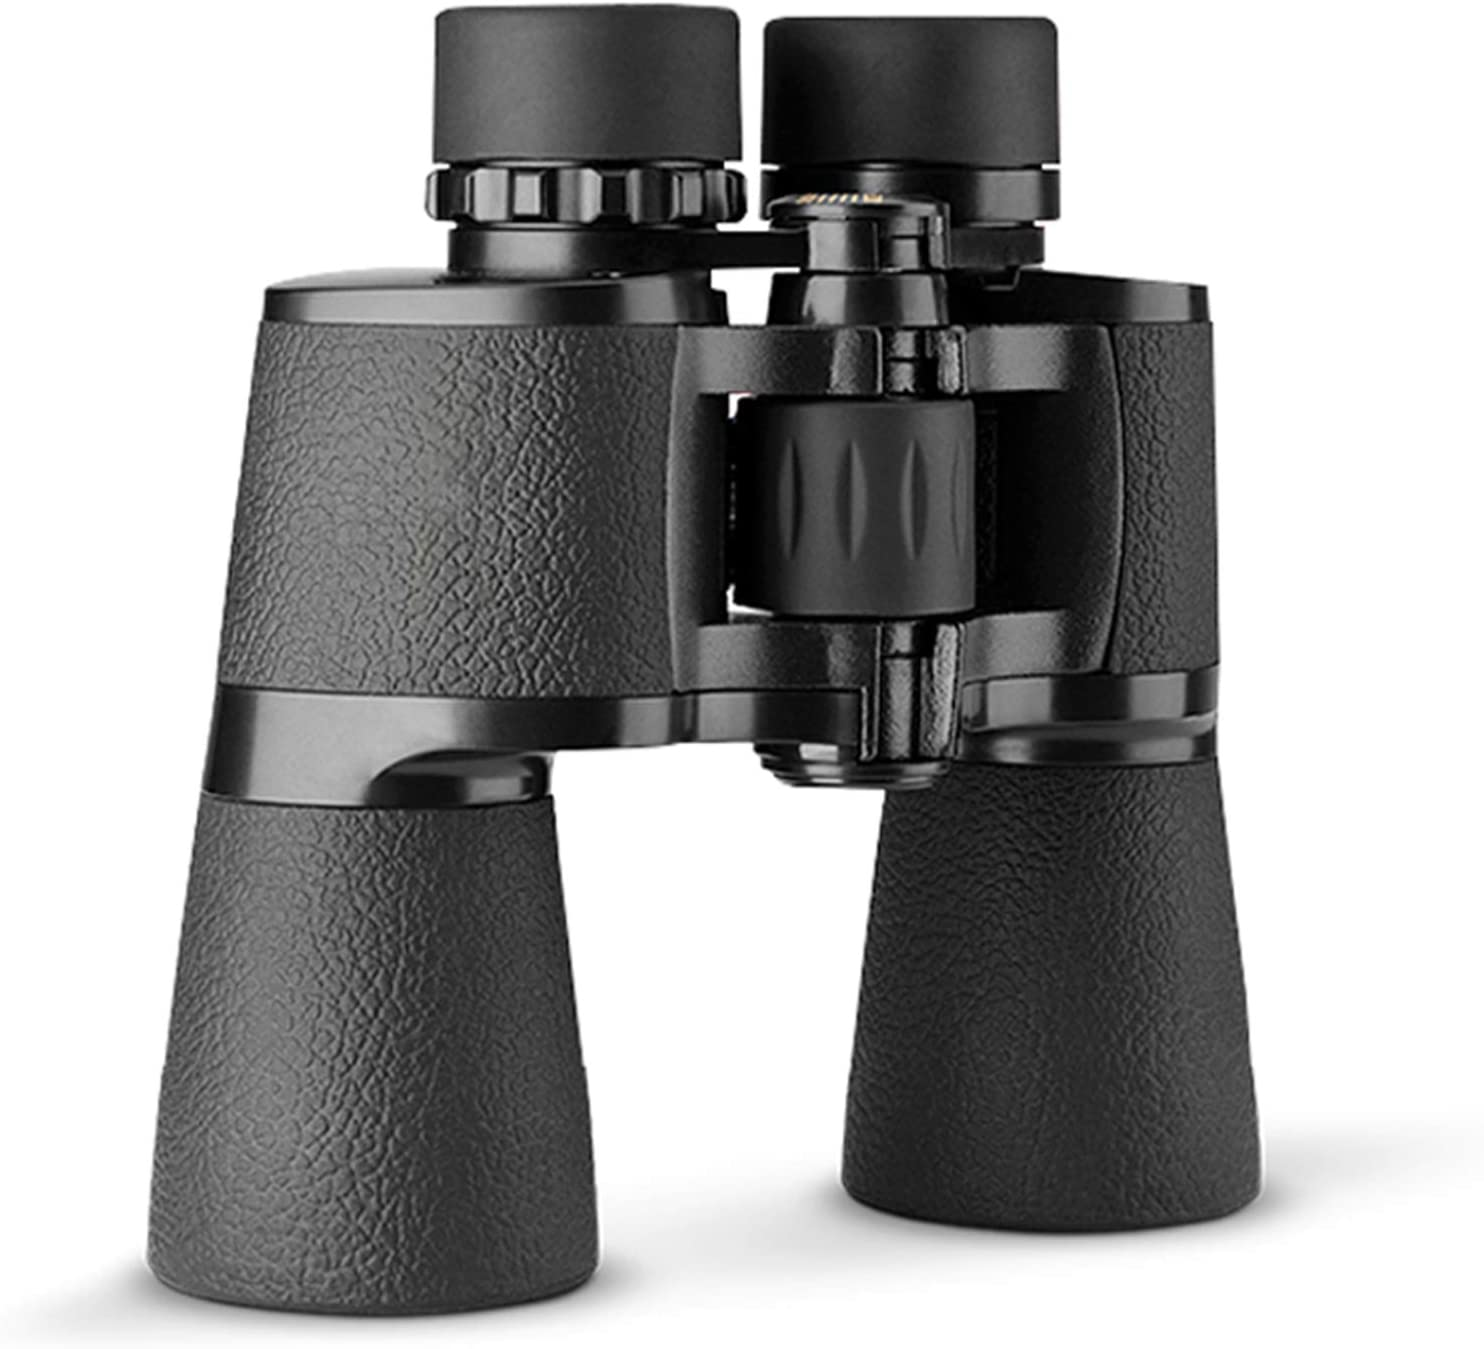 20x50 Binoculars for Adults, HD Professional/Waterproof Fogproof Binoculars with Low Light Night Vision, Durable and Clear FMC BAK4 Prism Lens, for Birds Watching Hunting Traveling Outdoor Sports : Camera & Photo